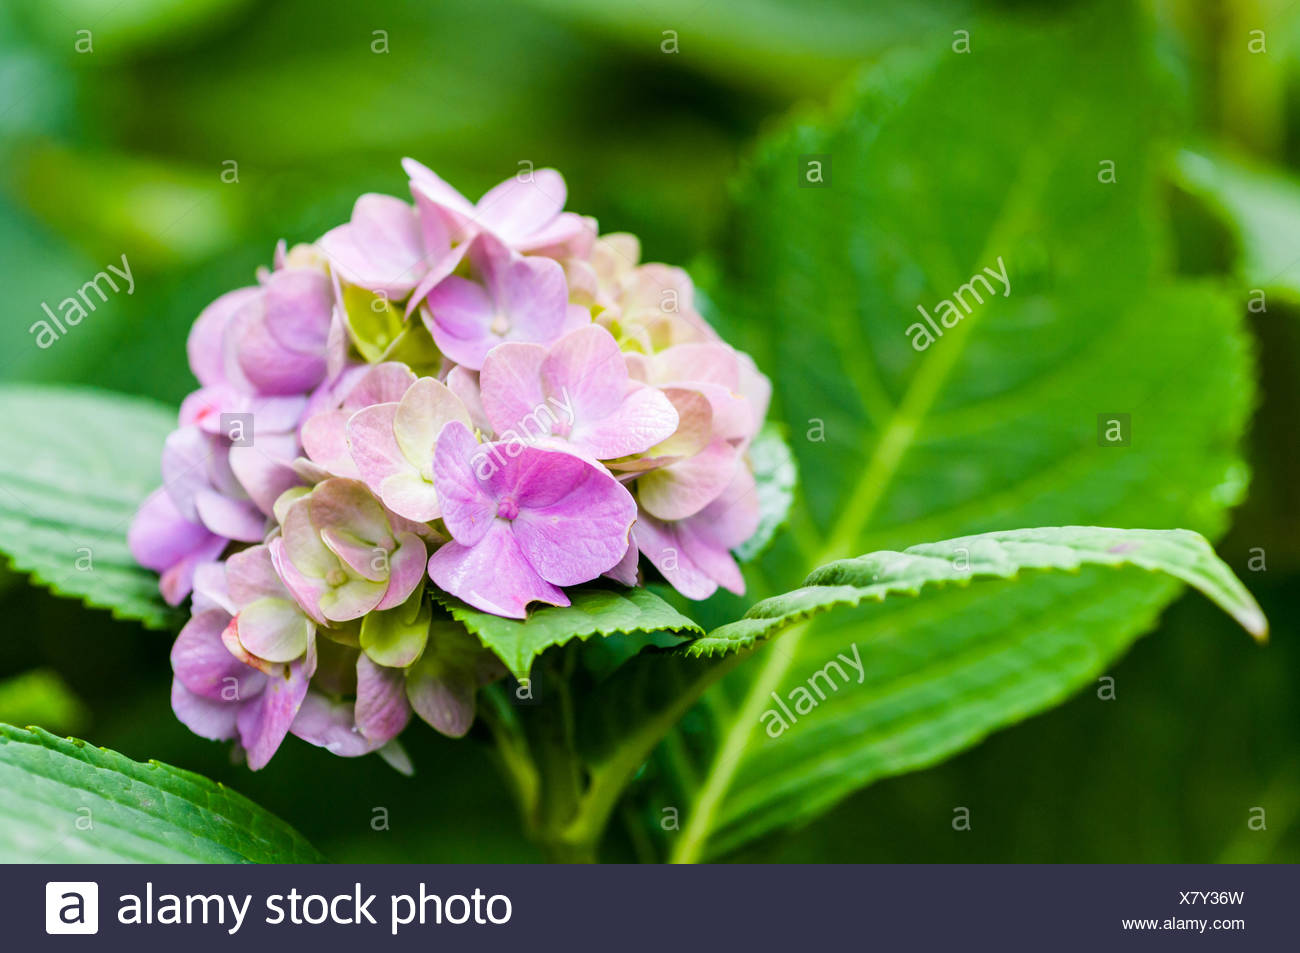 Close-Up Of Pink Hydrangeas Blooming Outdoors - Stock Image